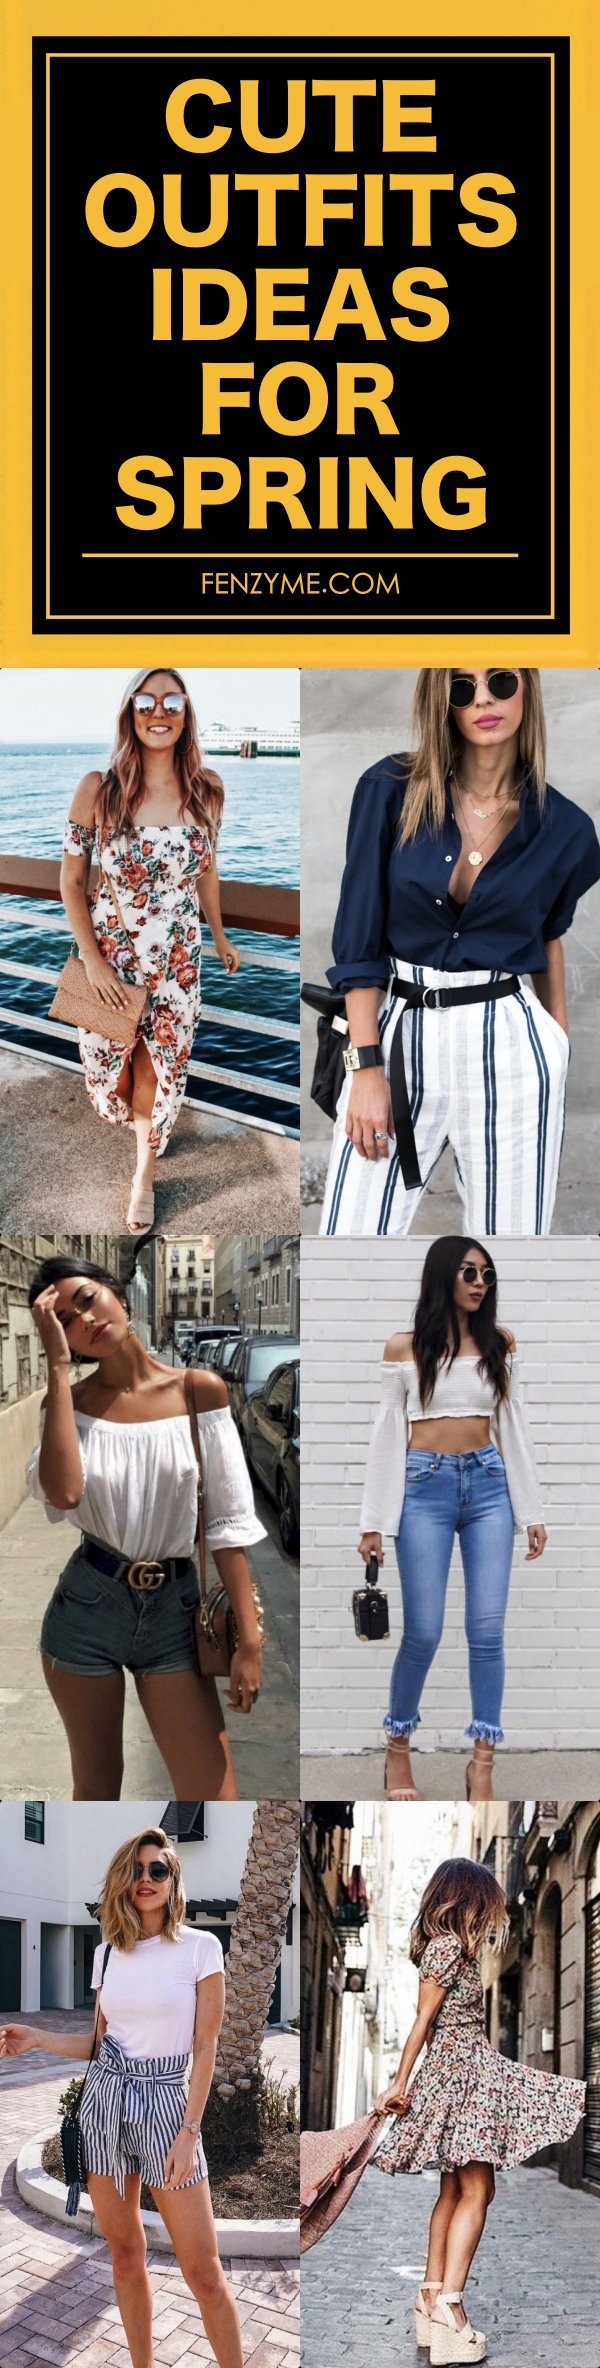 Cute Outfits ideas for Spring